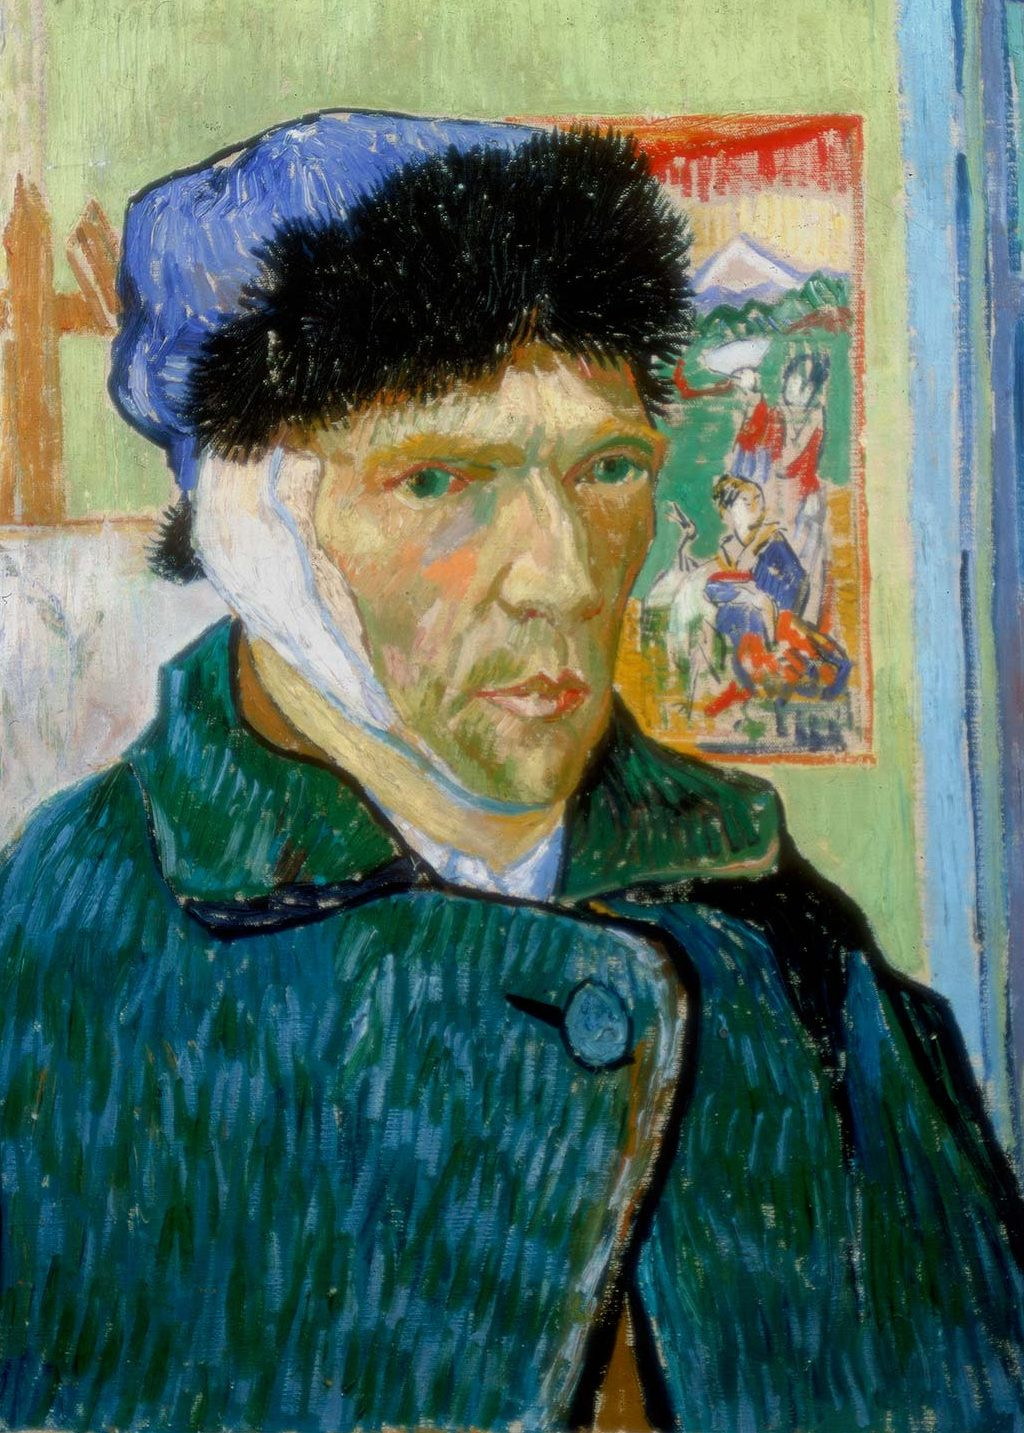 Vincent Van Gogh Cut f His Ear After Learning His